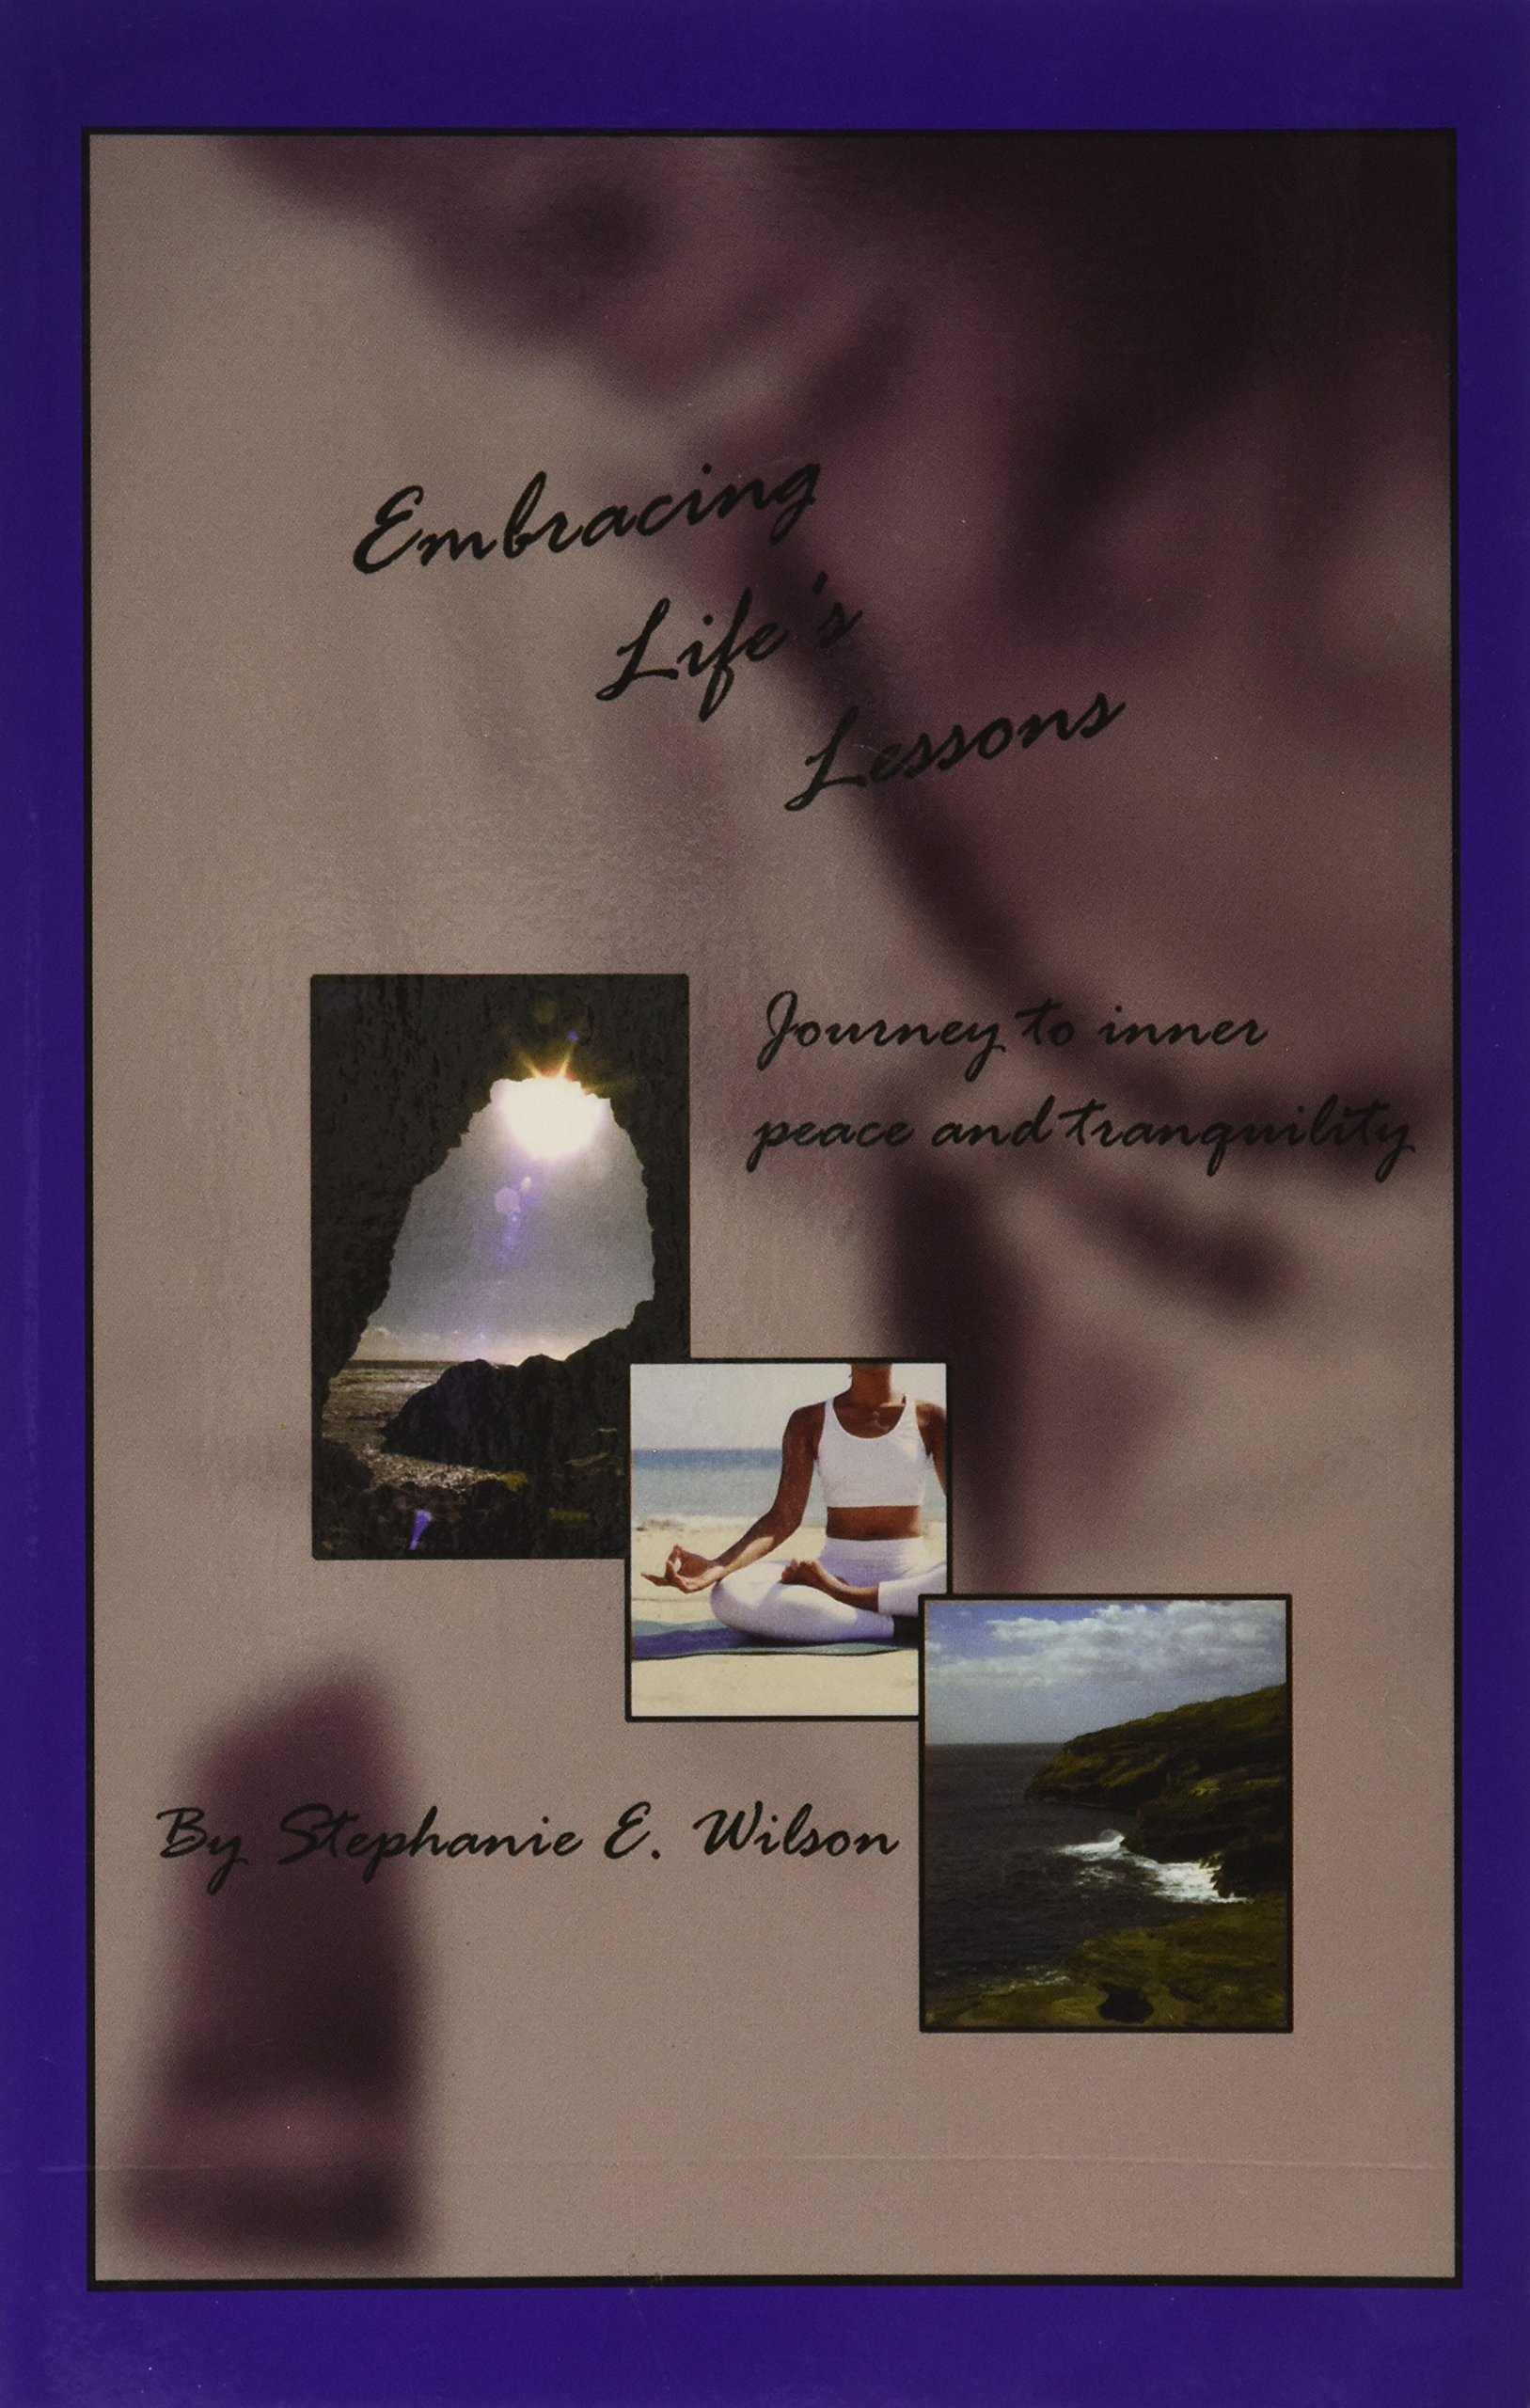 Read Online Embracing Life's Lessons pdf